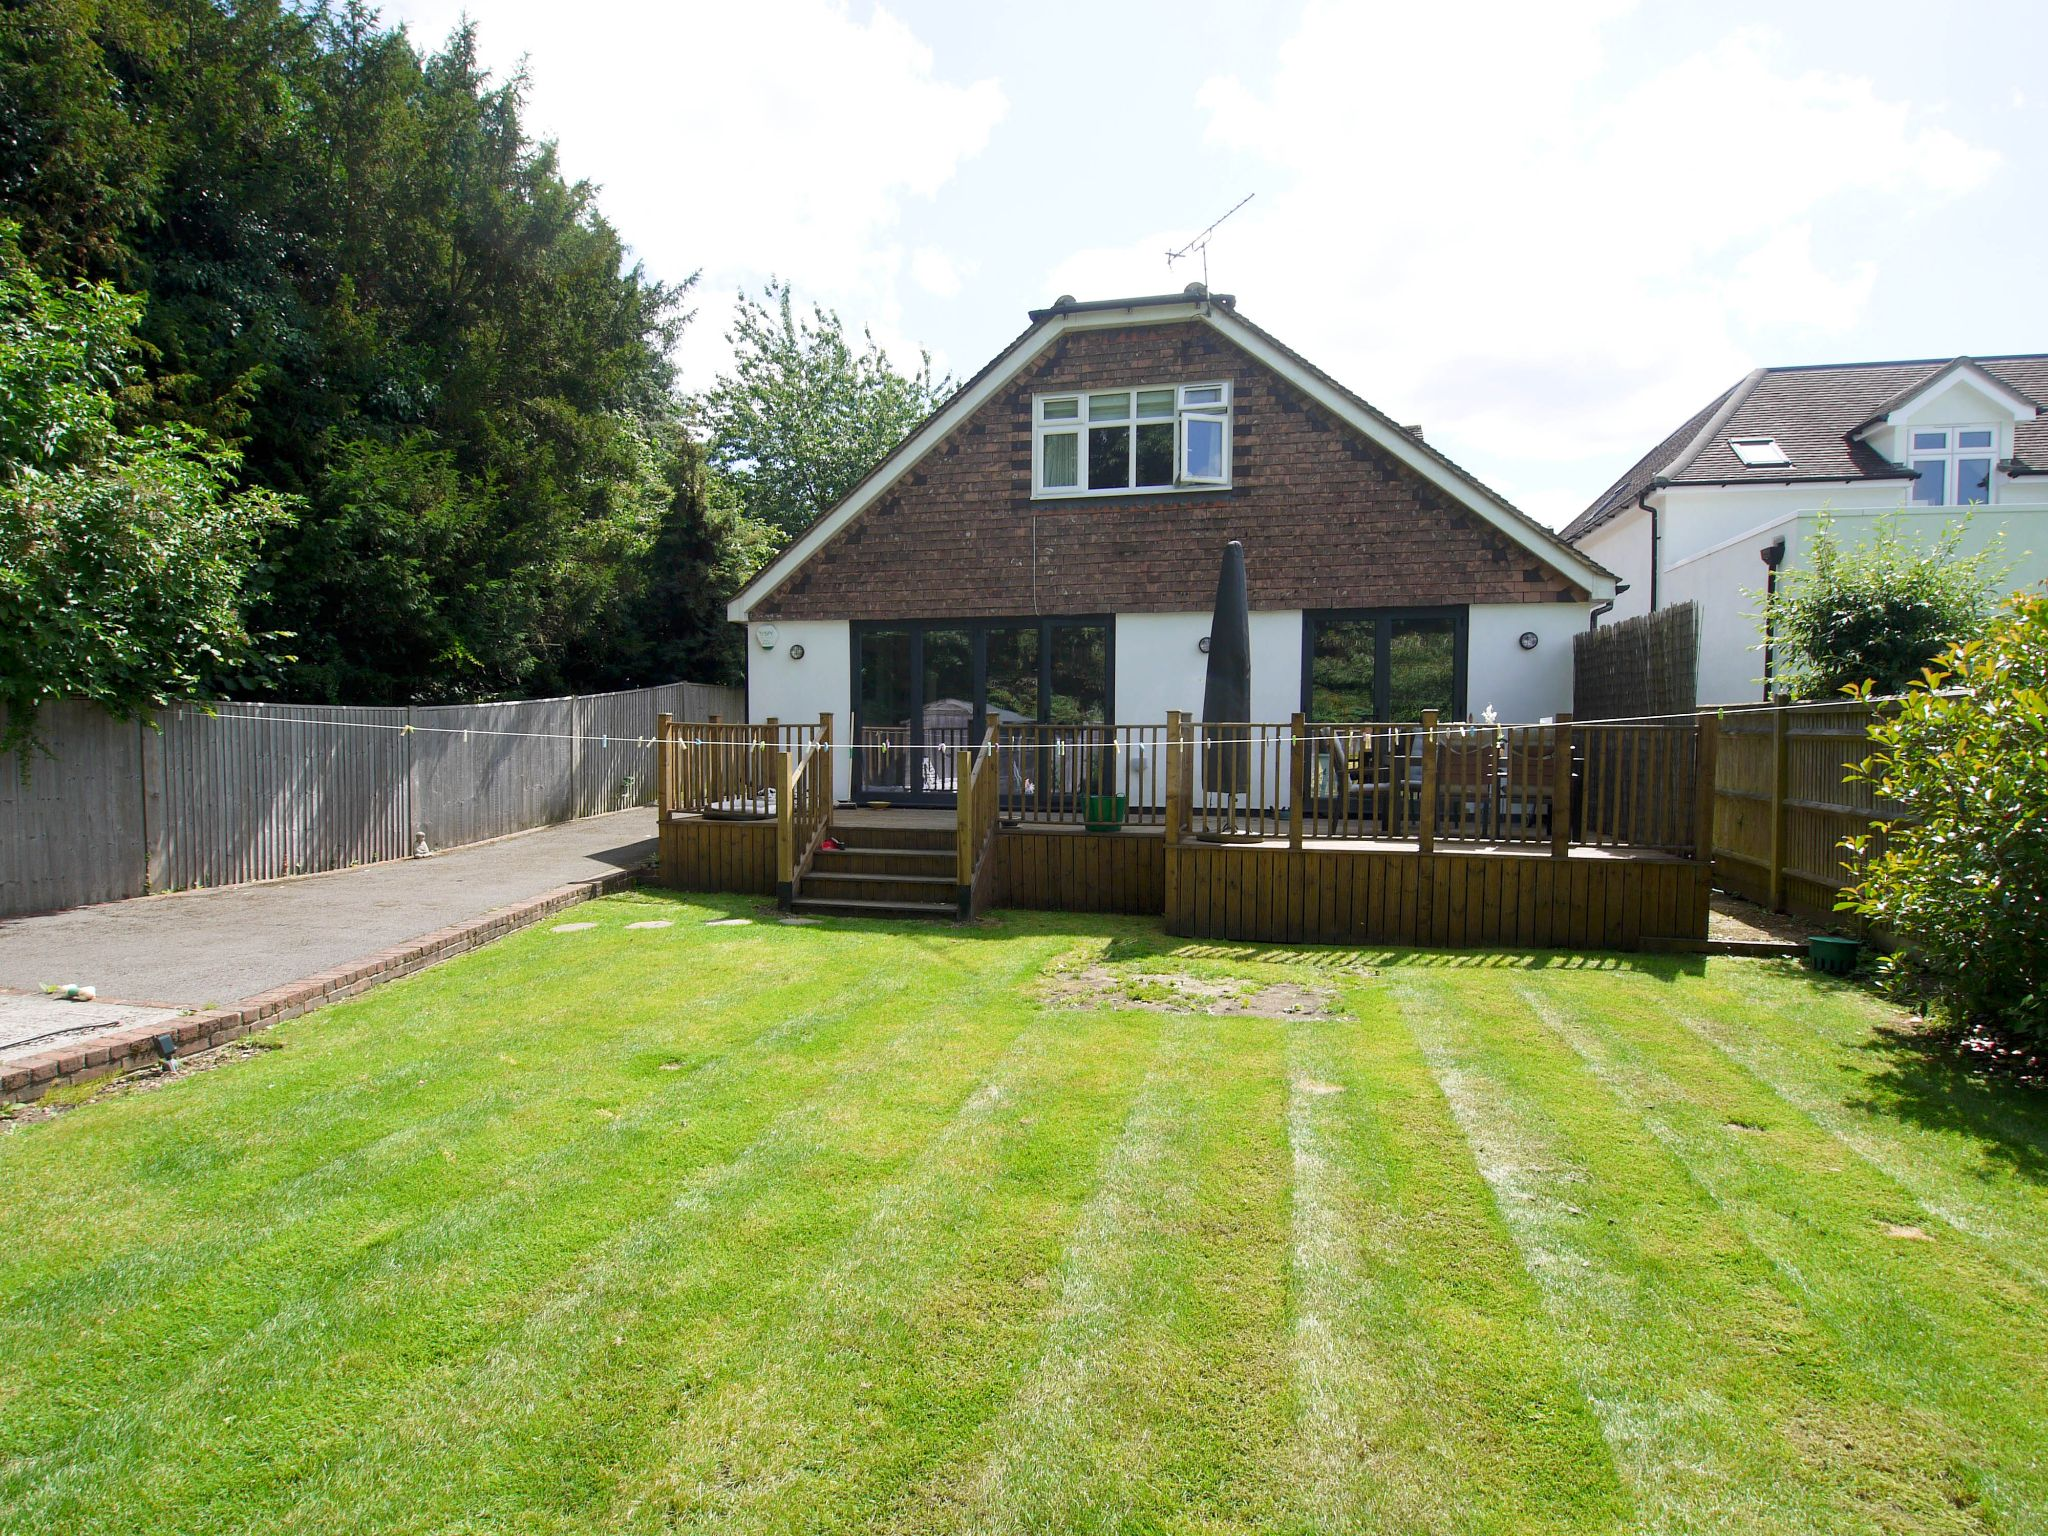 5 bedroom detached house Sold in Sevenoaks - Photograph 13